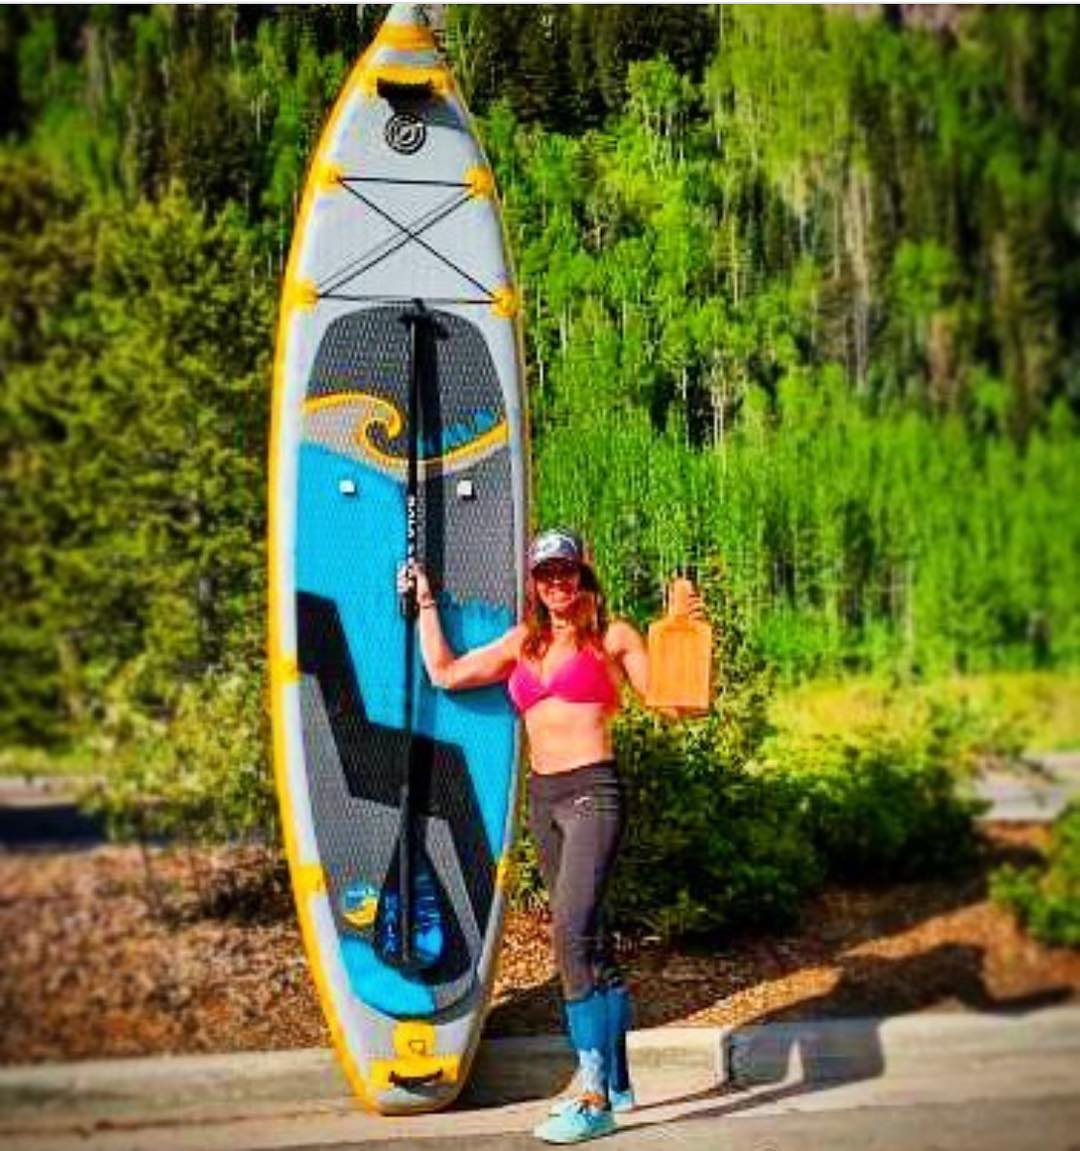 Congrats to Hala Athlete @trinwa on winning the Vail Whitewater Series!  #halagear #adventuredesigned #paddlewithfriends #isup #inflatable #standuppaddle #paddleboarding #suplifestyle #adventurers #sup #supthemag #repostmysup #stand_up_paddle #paddle...